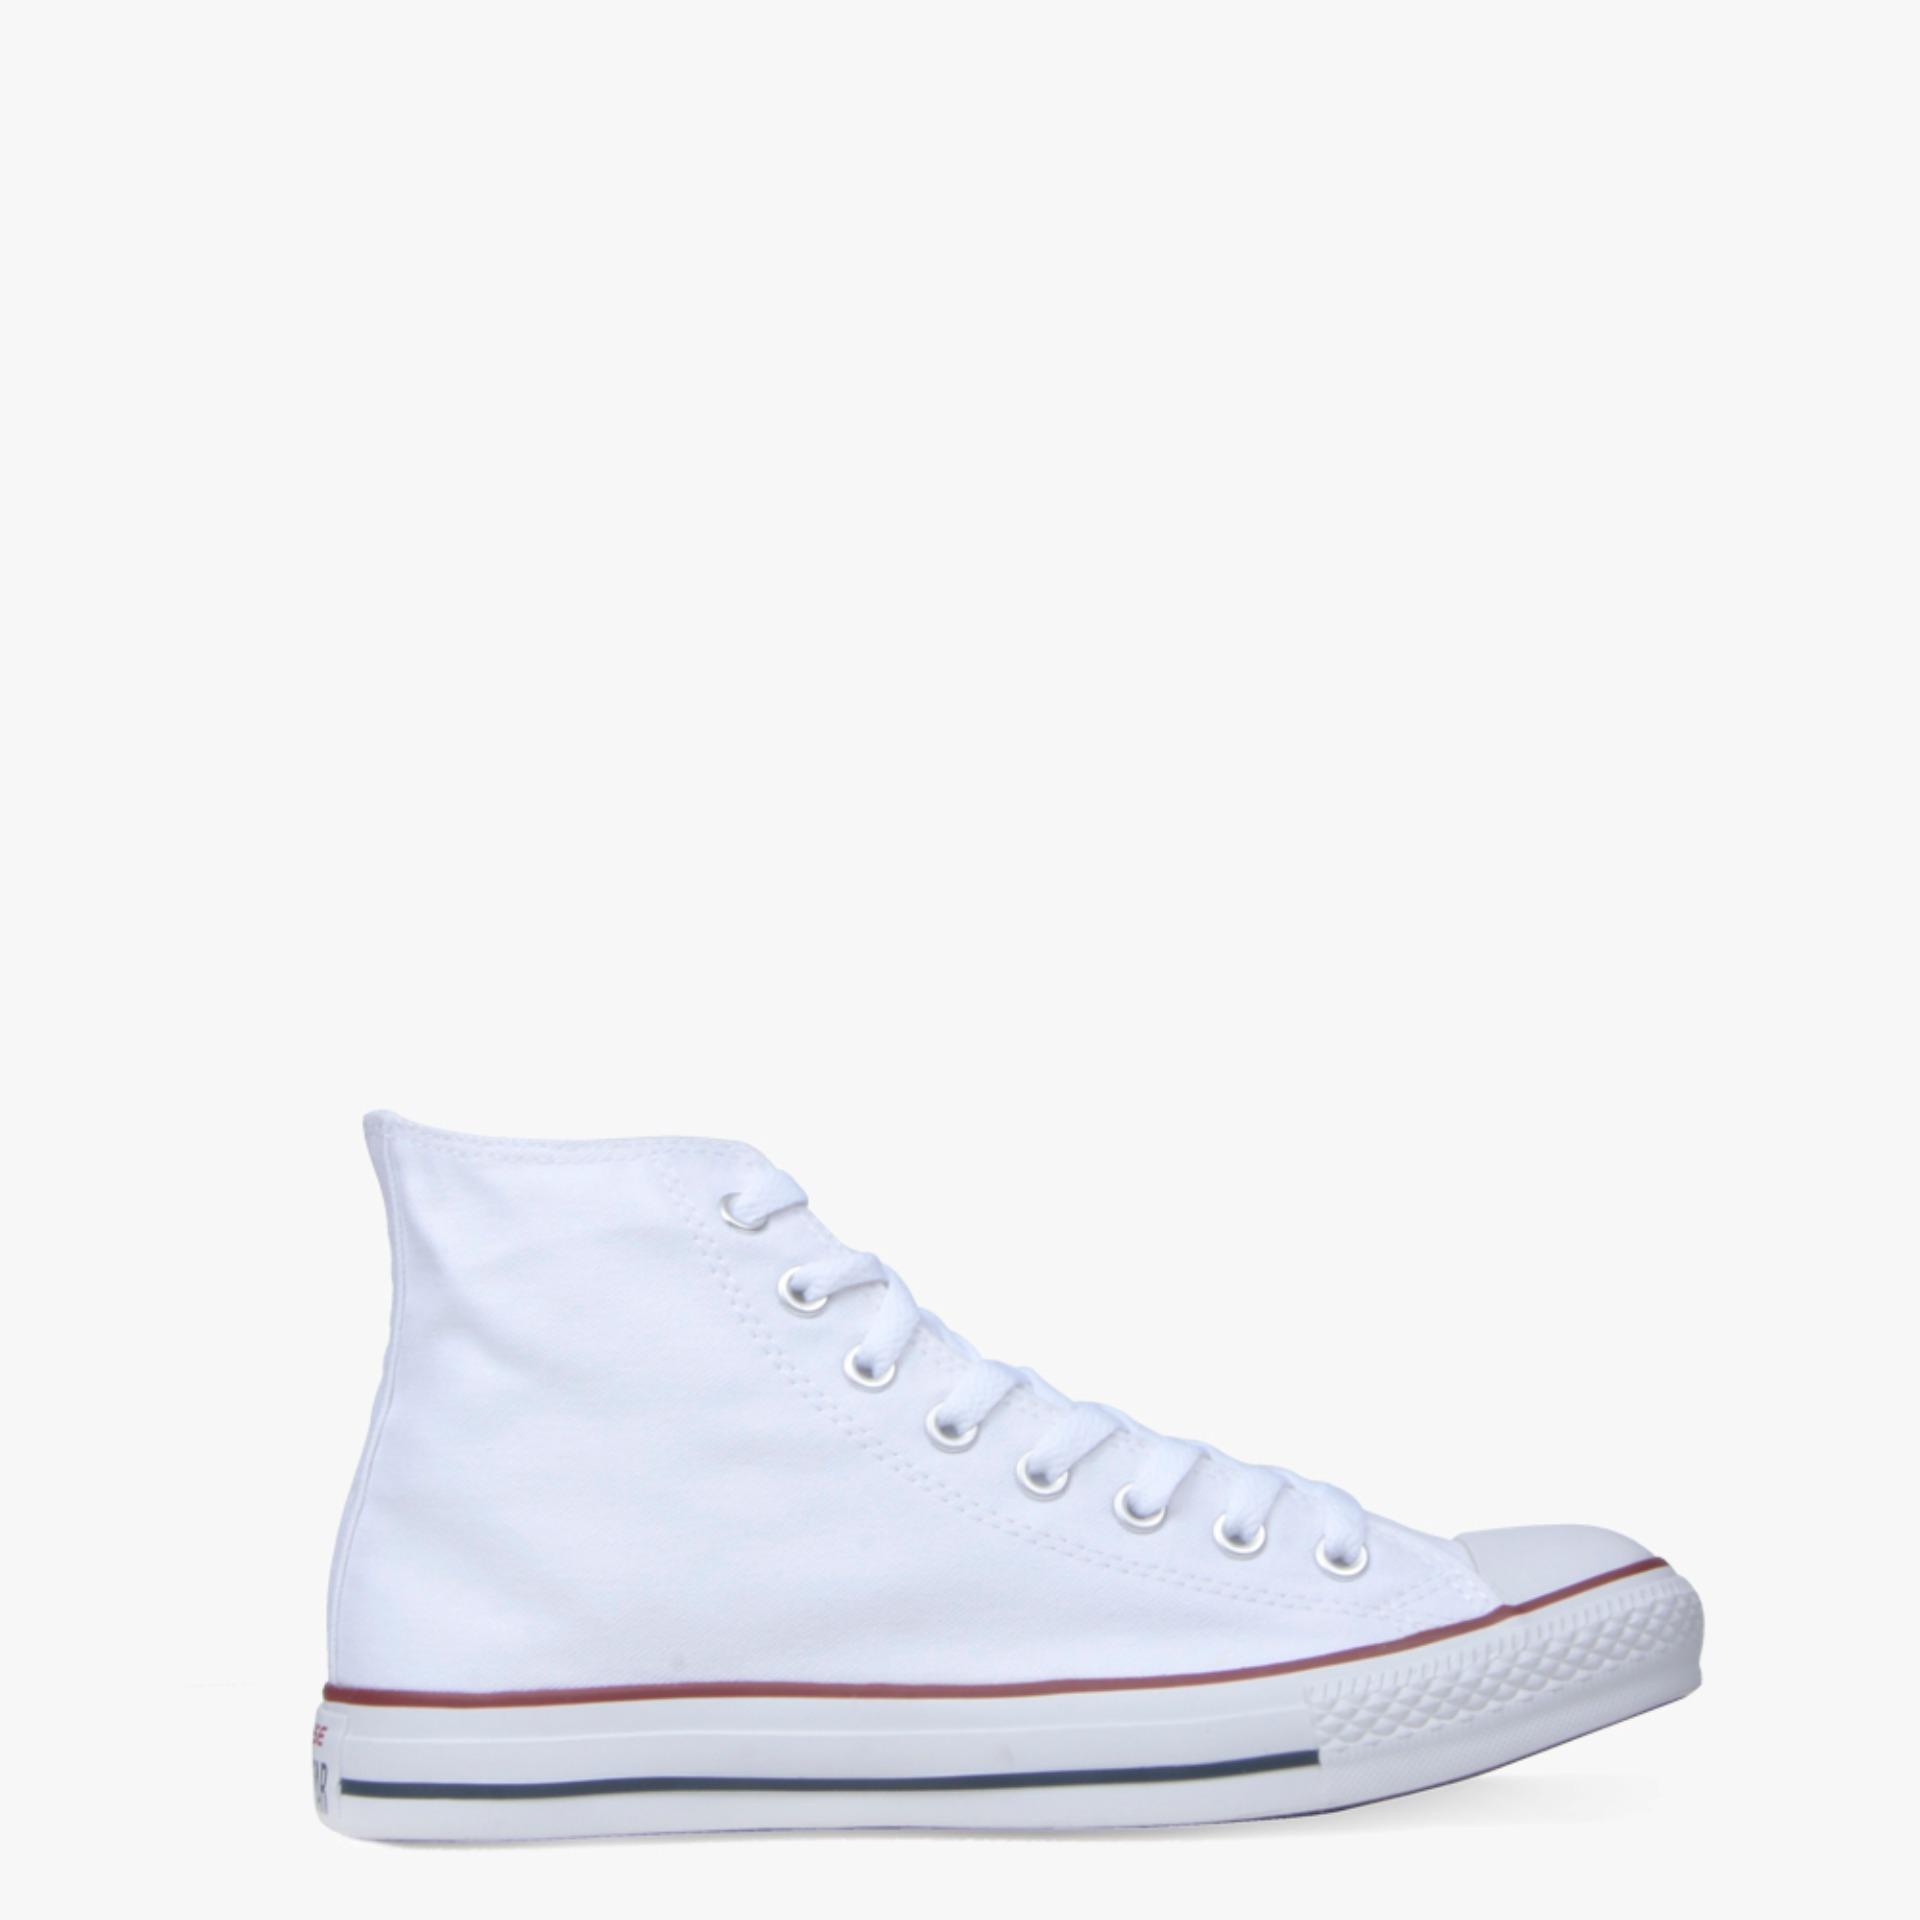 Jual Cepat Converse Chuck Taylor All Star Classic Unisex Shoes White